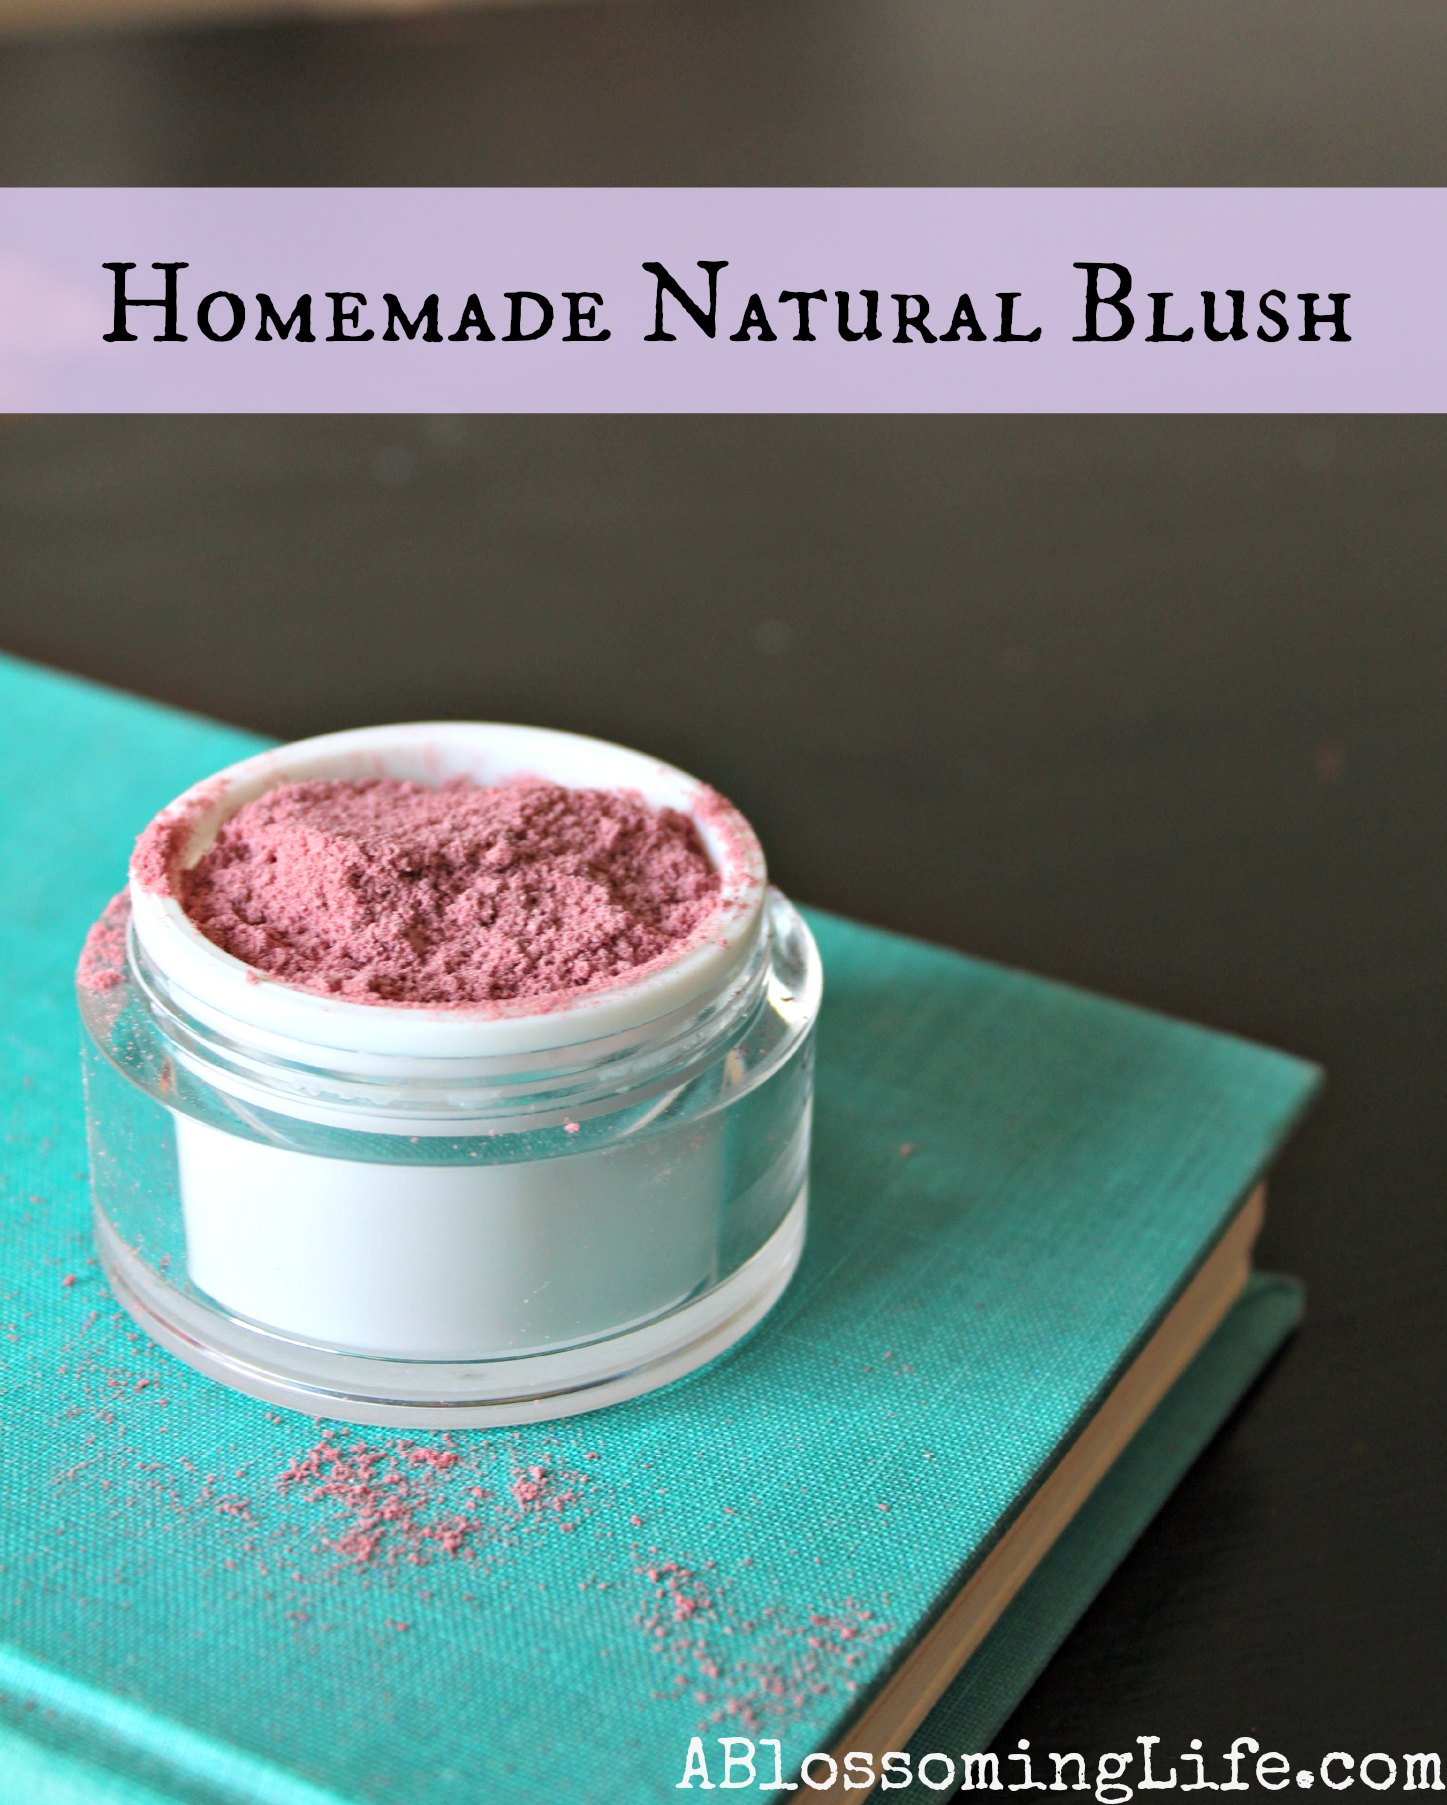 Homemade Natural Blush